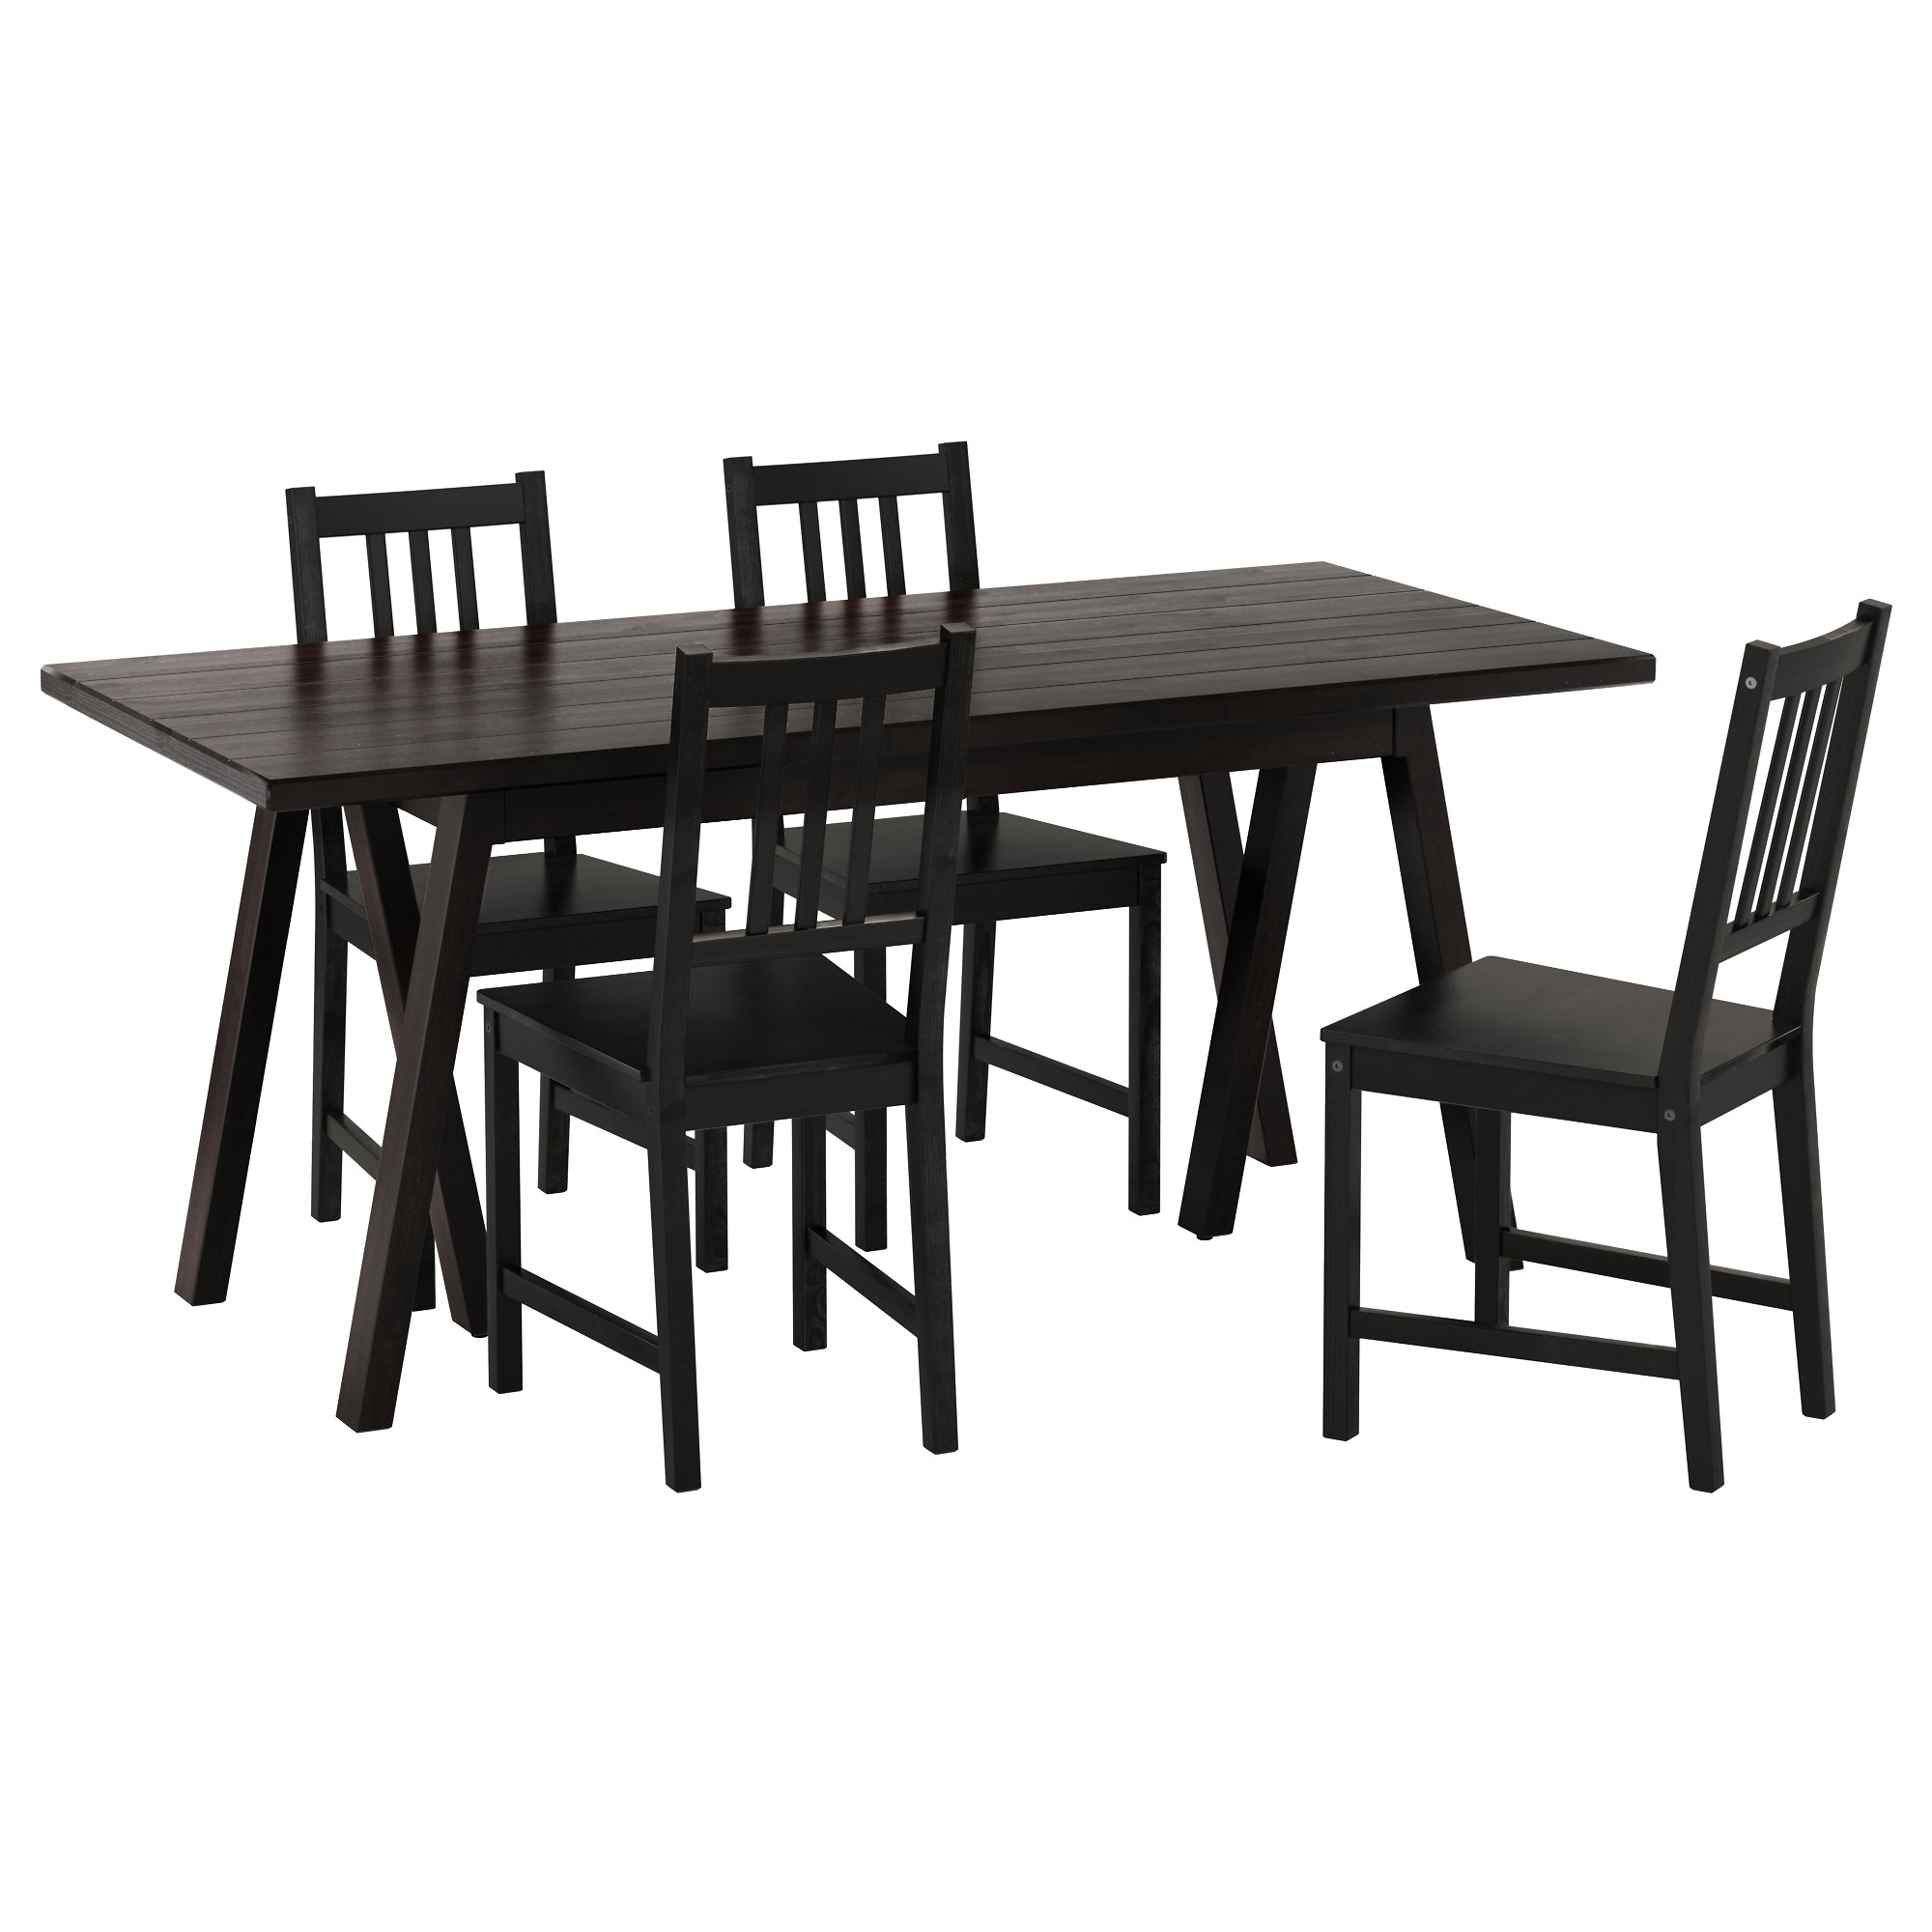 Dining Tables. Astounding Dining Table Set Ikea: Captivating Dining In Well Liked Two Person Dining Table Sets (Gallery 21 of 25)